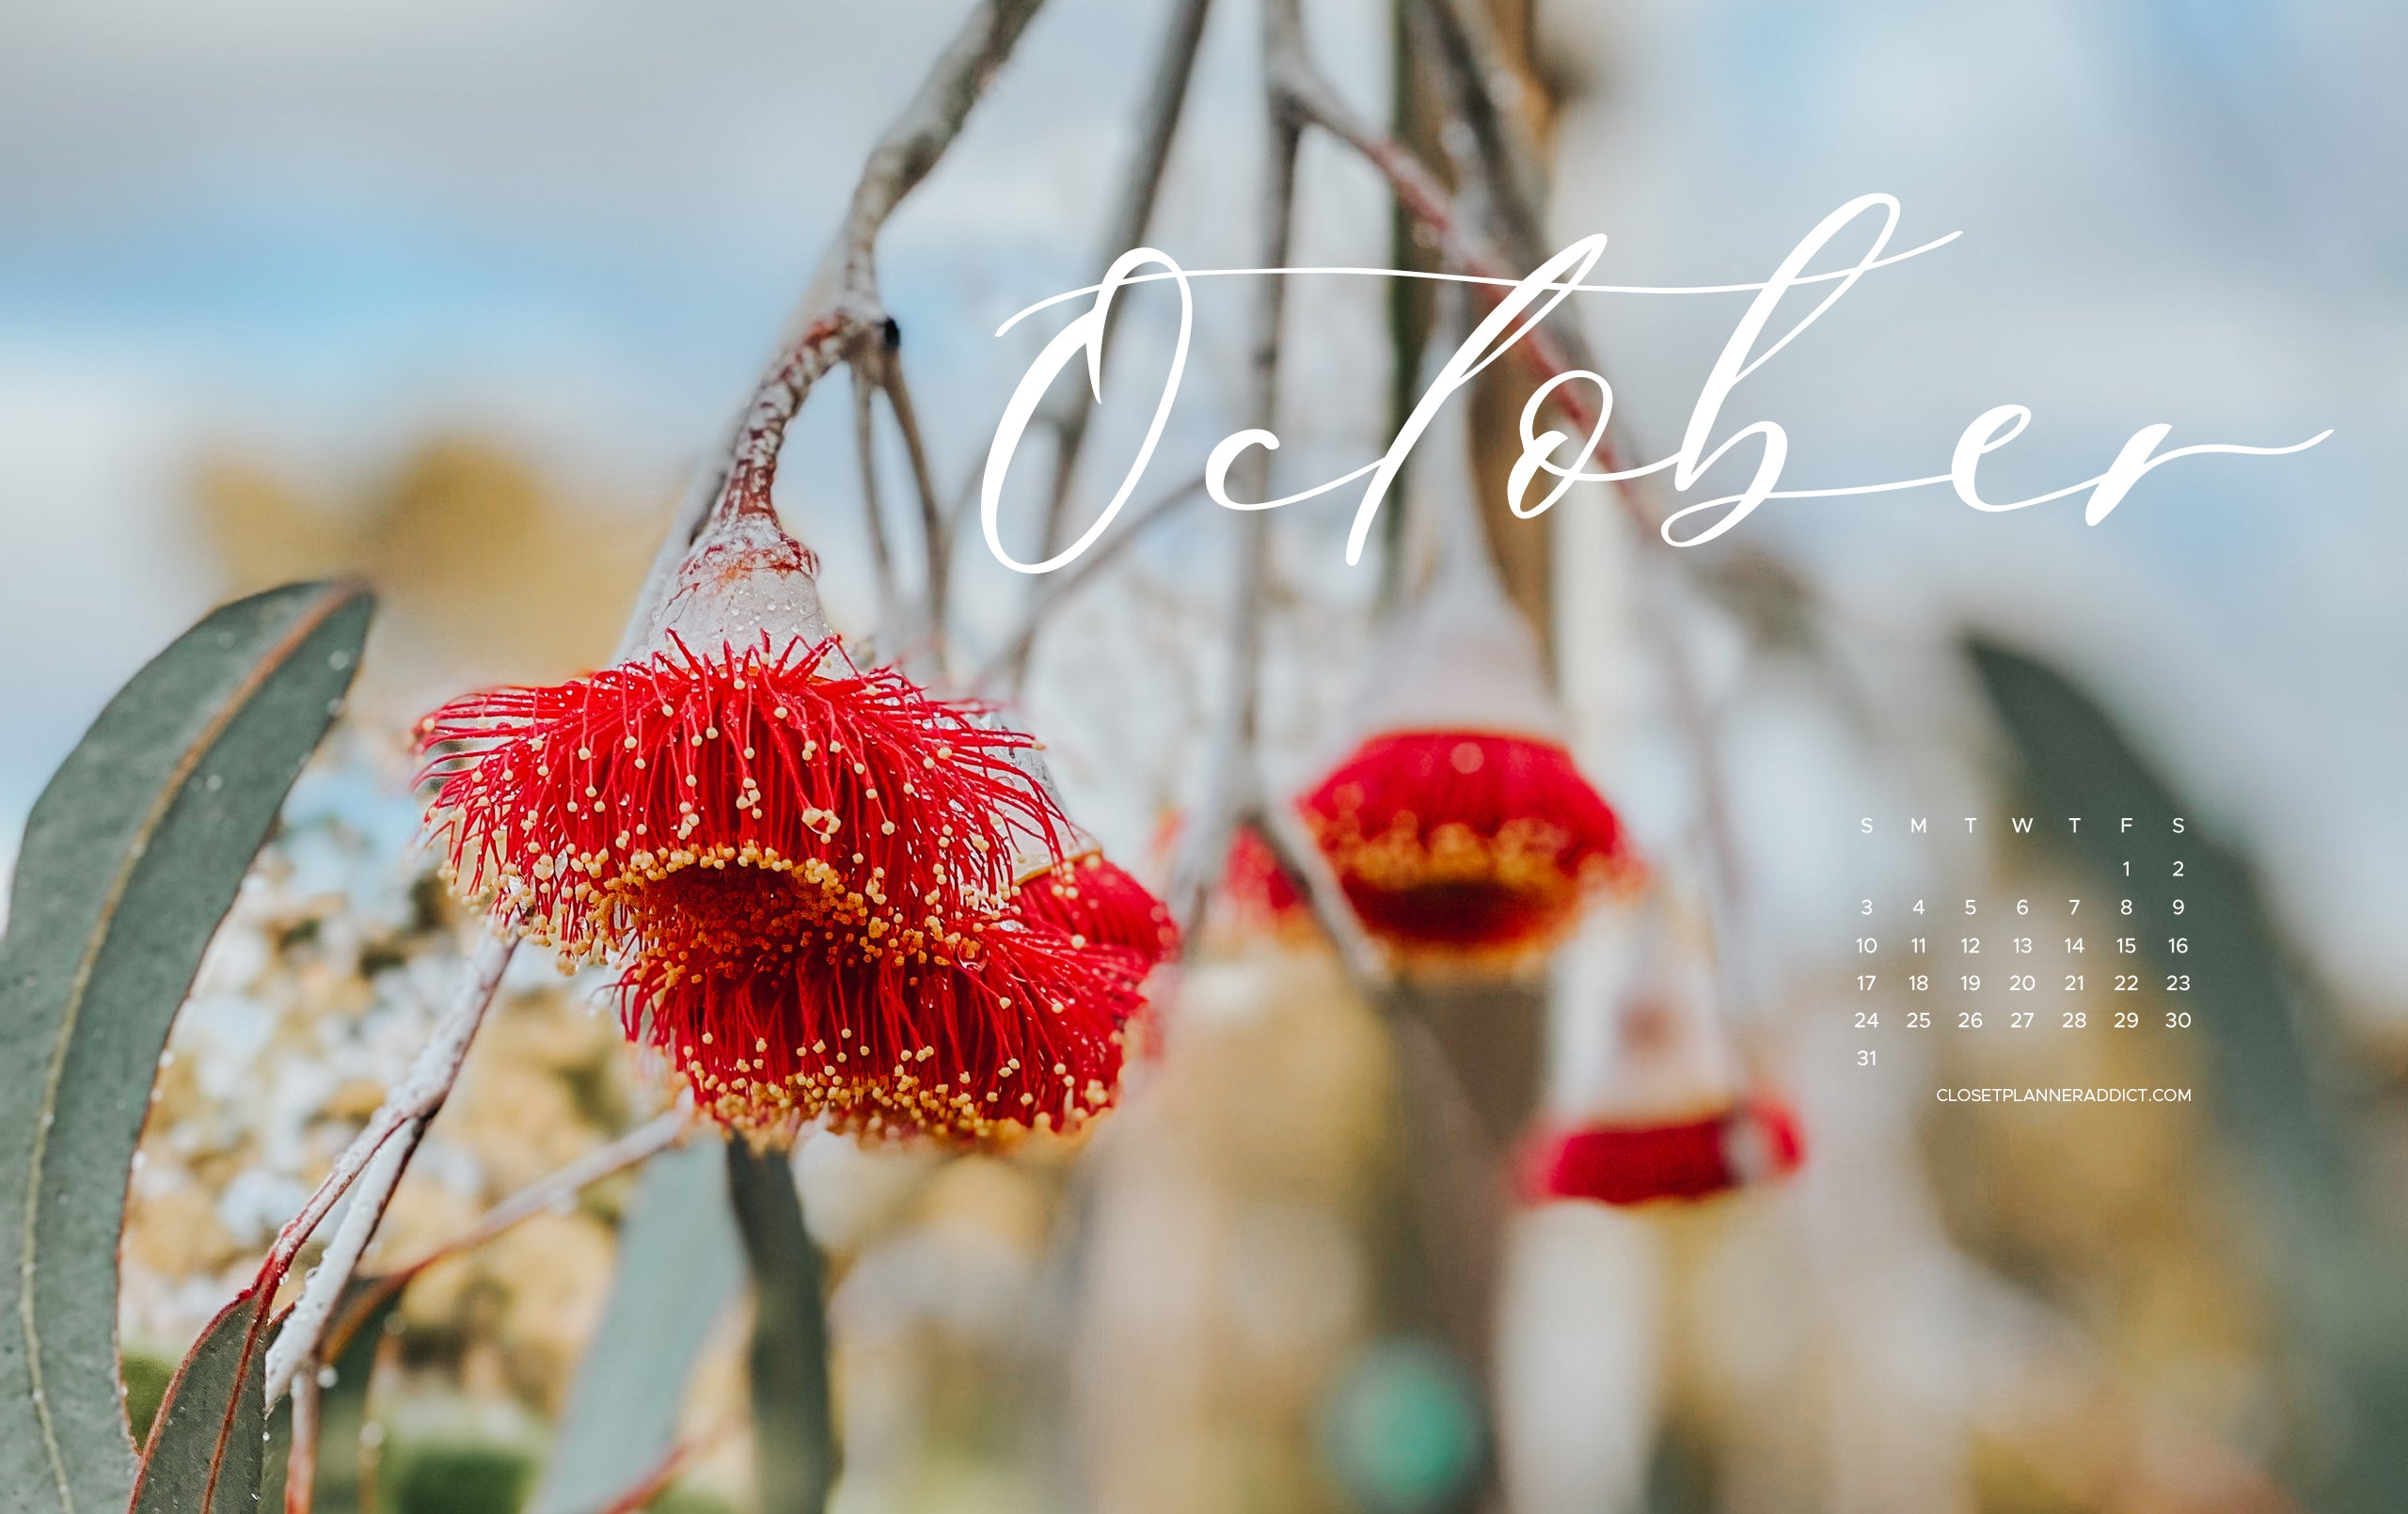 Free Download October 2021 Wallpaper by Closet Planner Addict